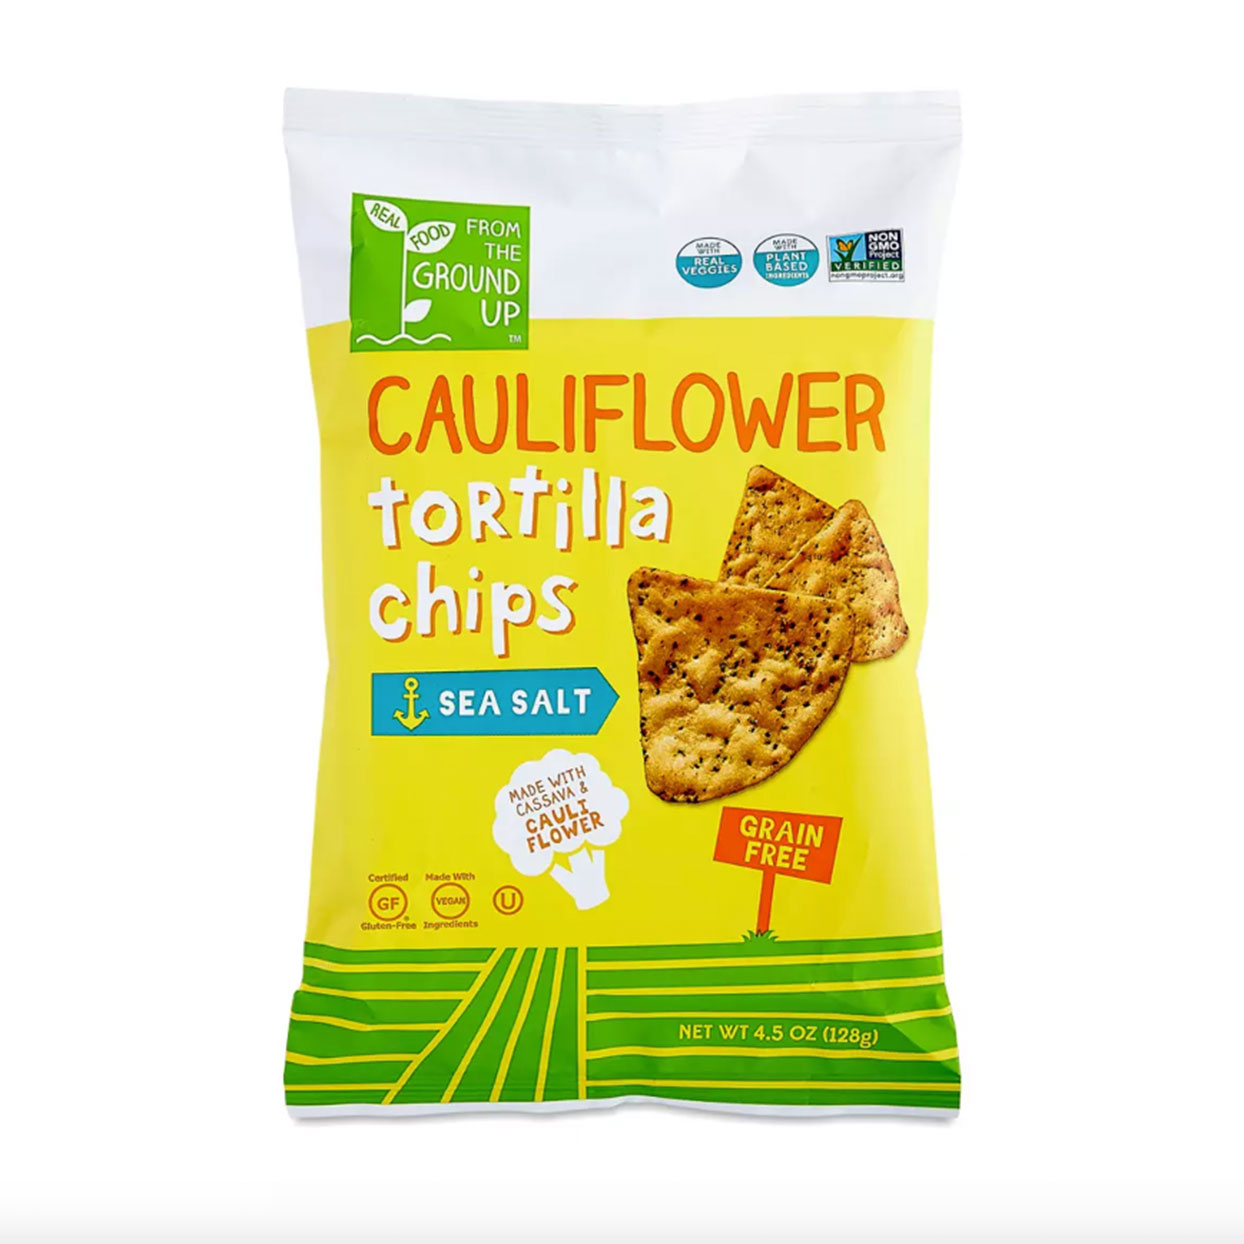 From The Ground UP Cauliflower Tortilla Chips